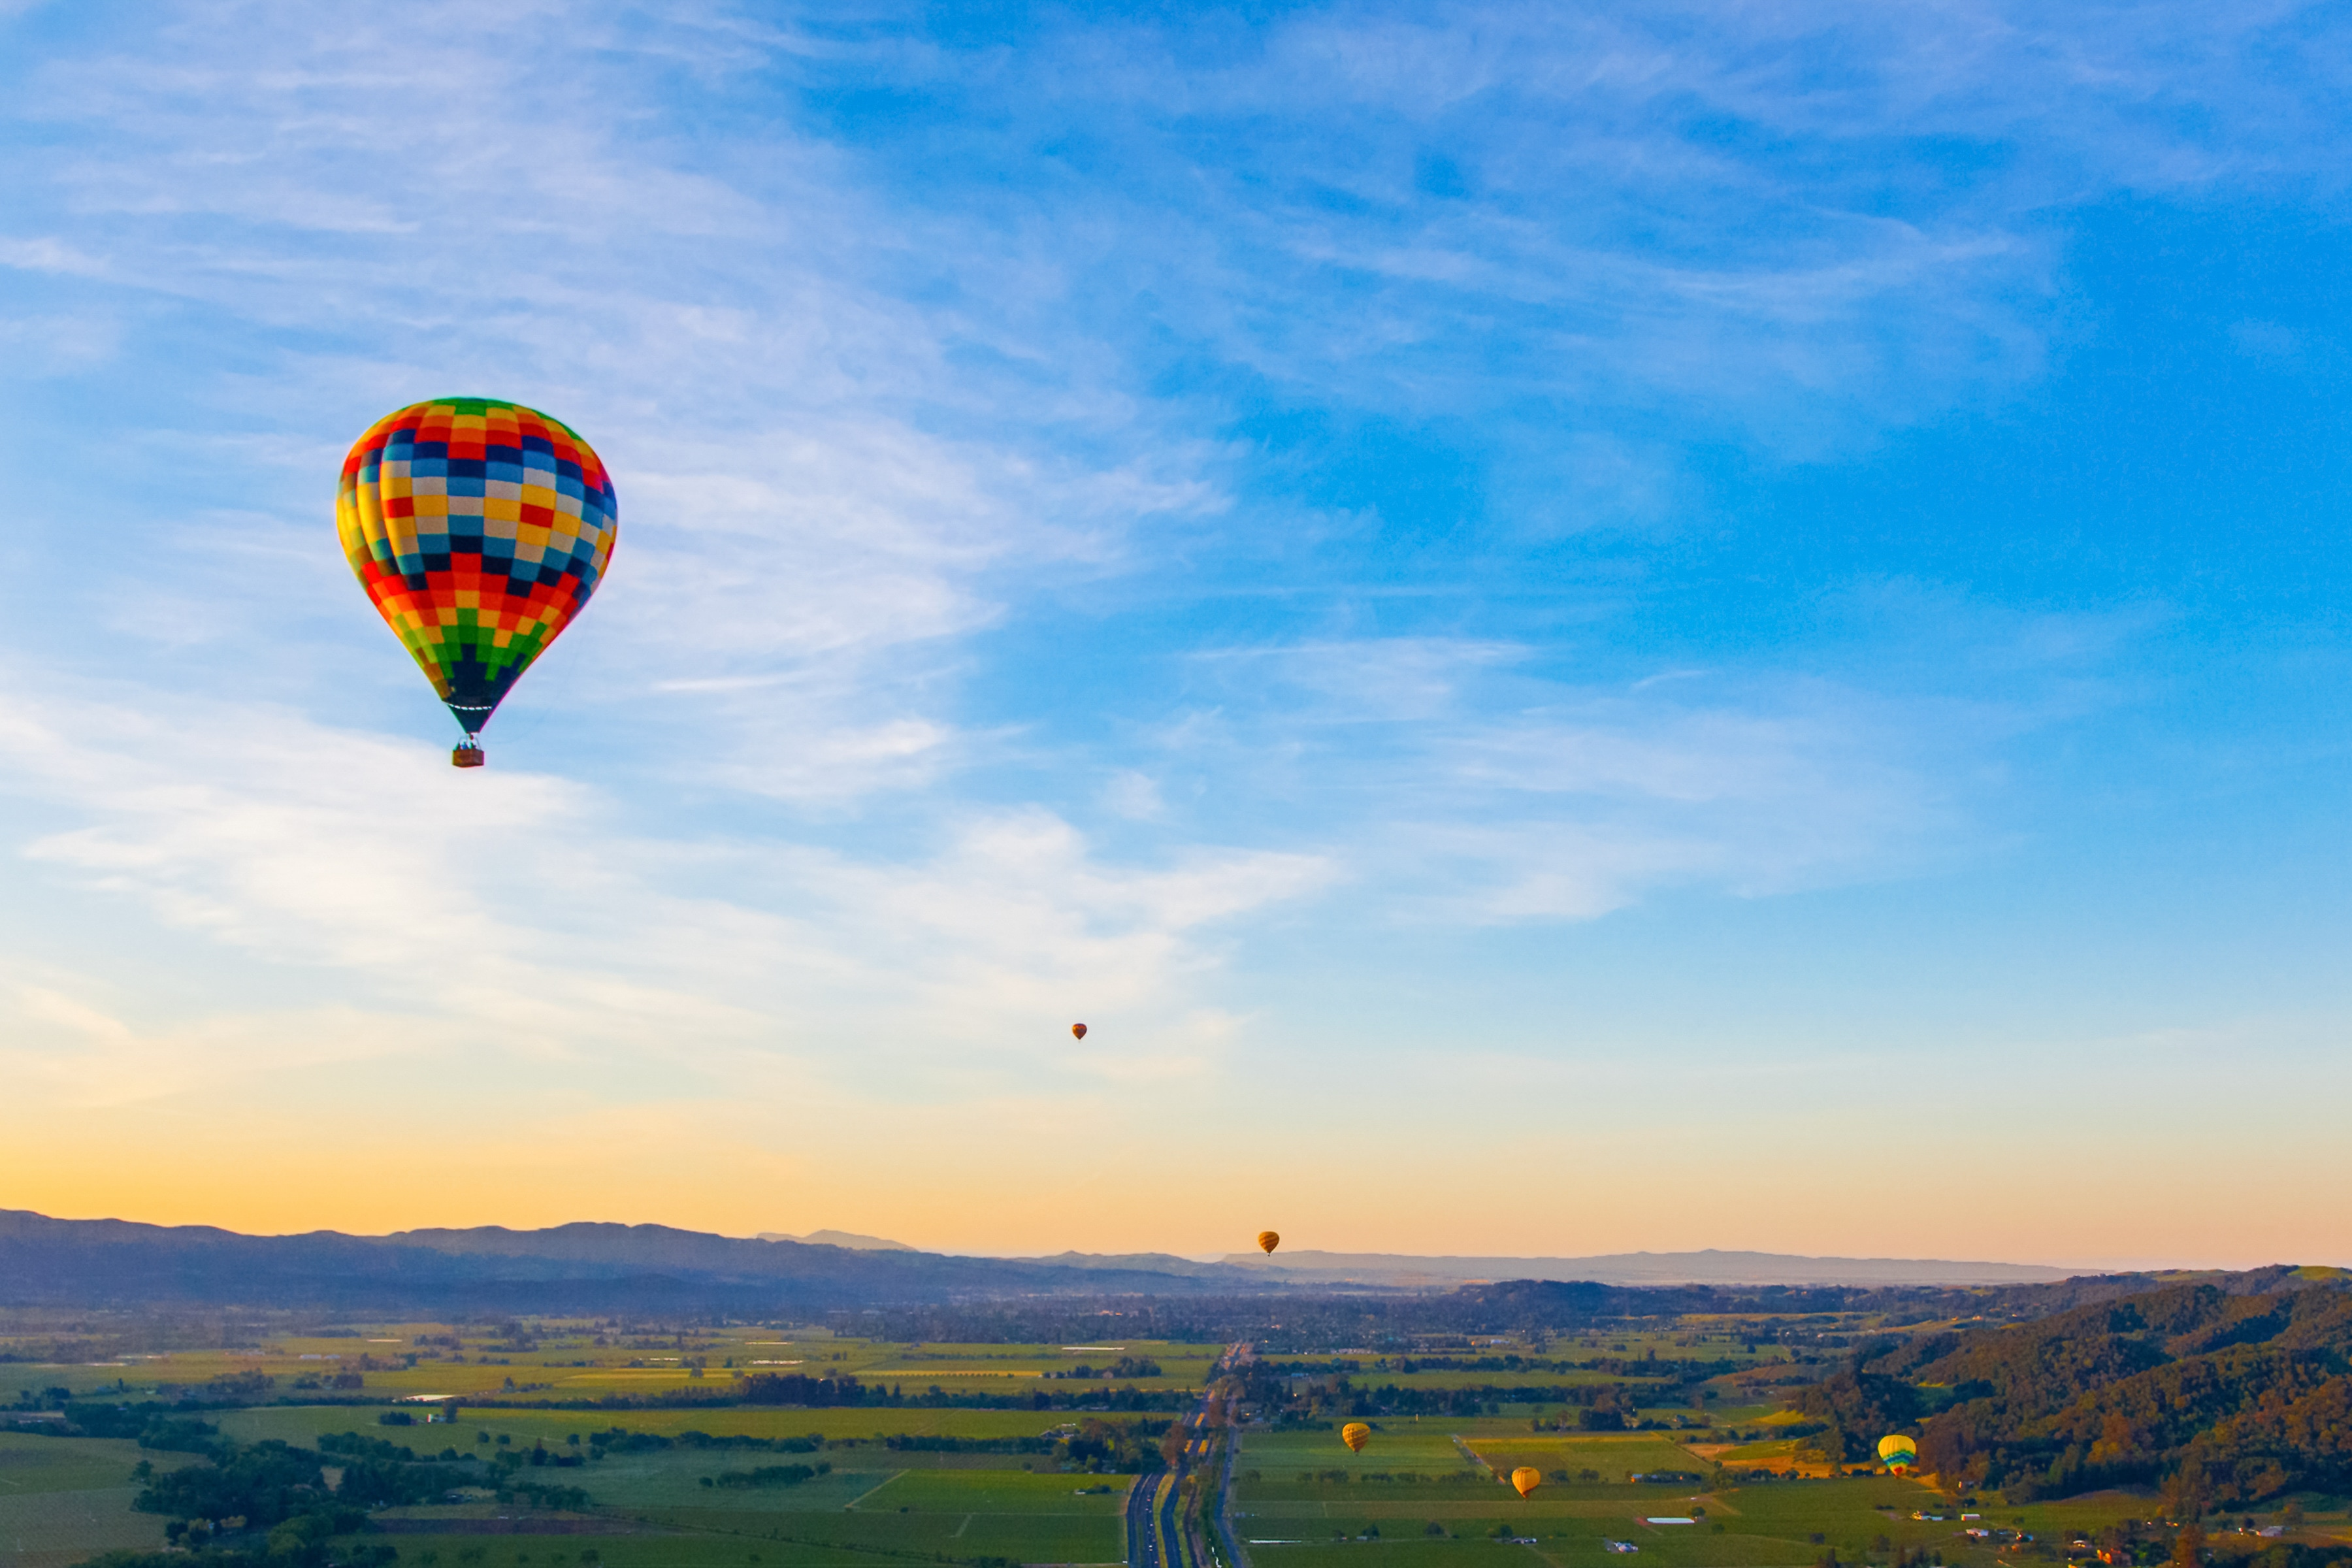 Hot air ballooning is a popular Sonoma pastime.